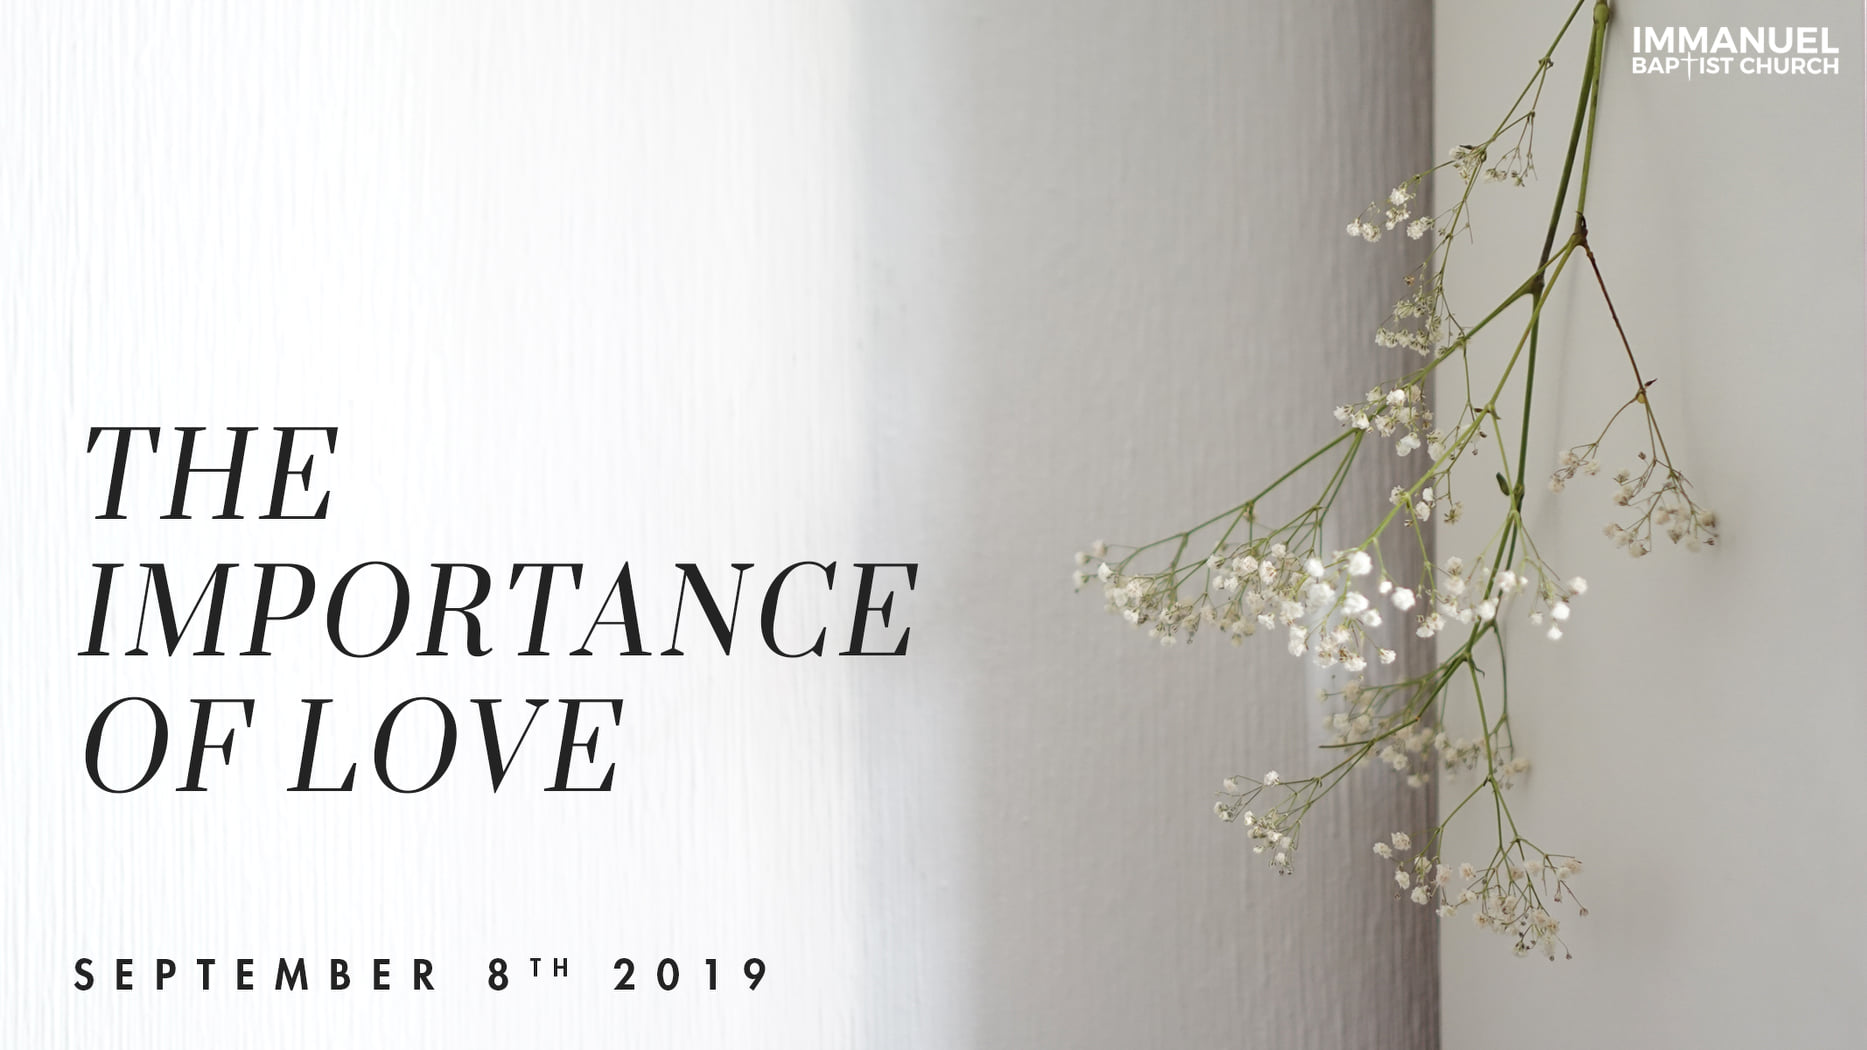 The Importance of Love